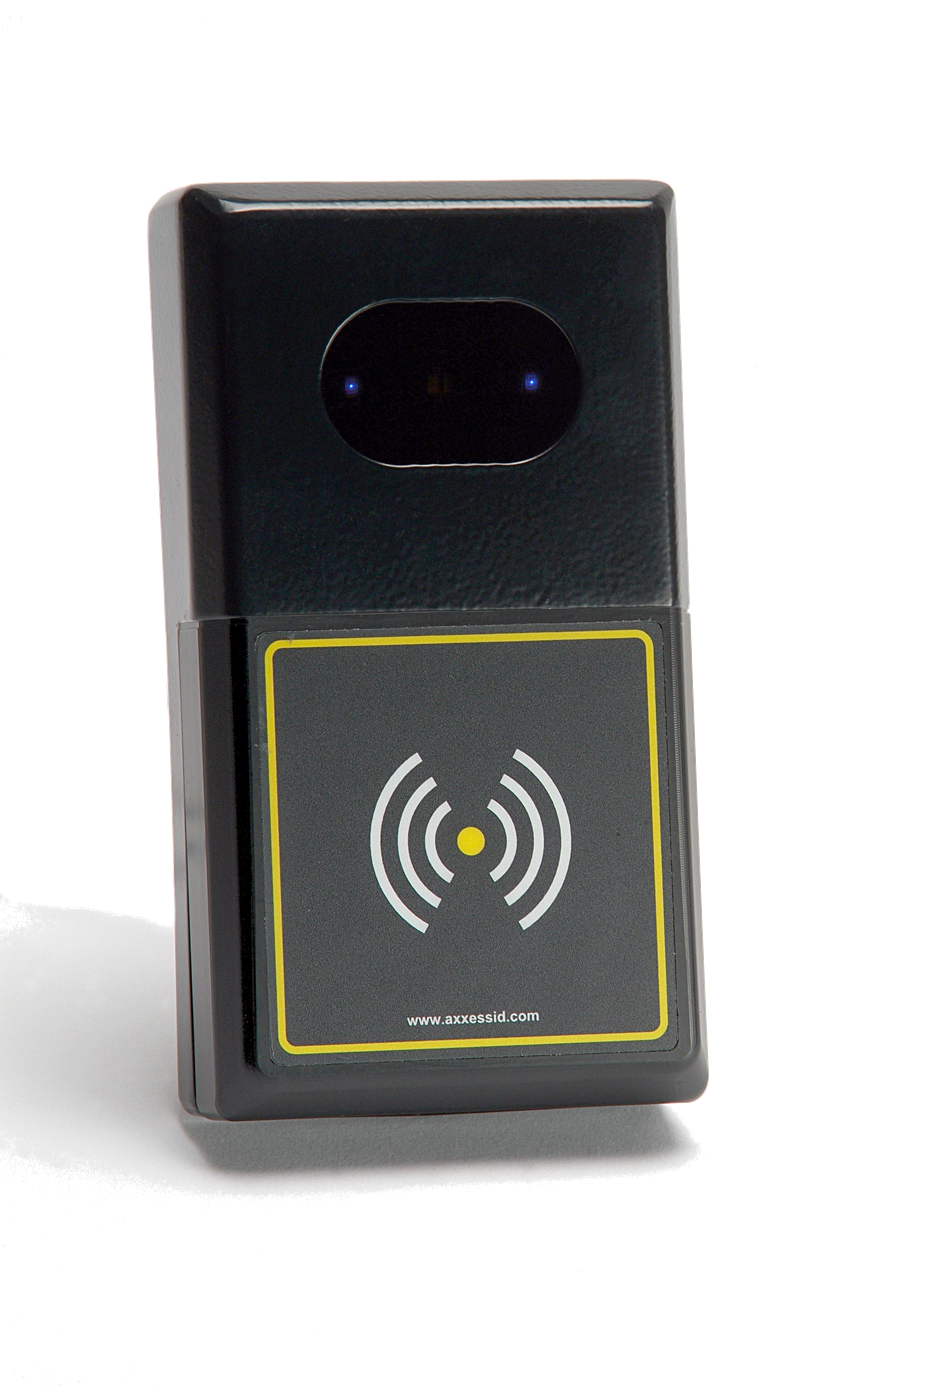 MTX Reader. Simultaneously reads 186 existing access control cards. High security.